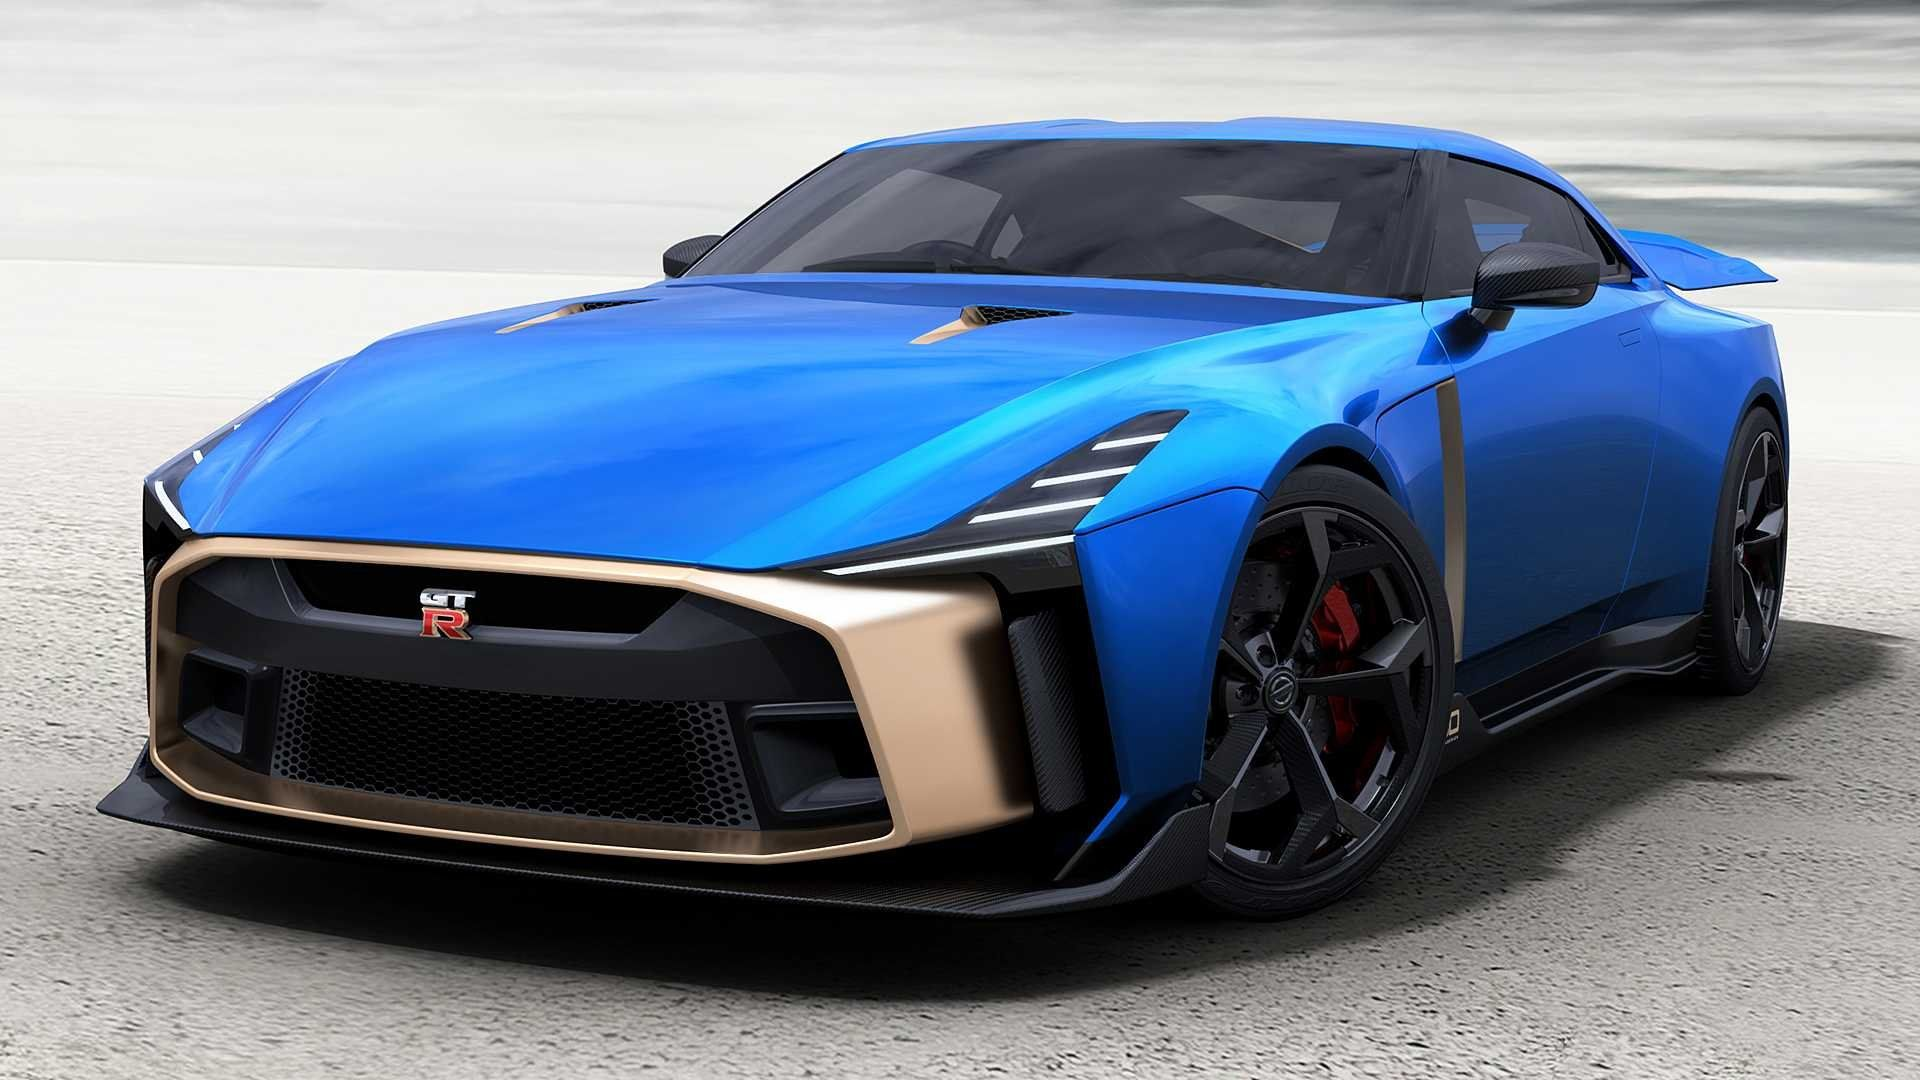 2020 Nissan Gtr Nismo Hybrid Picture